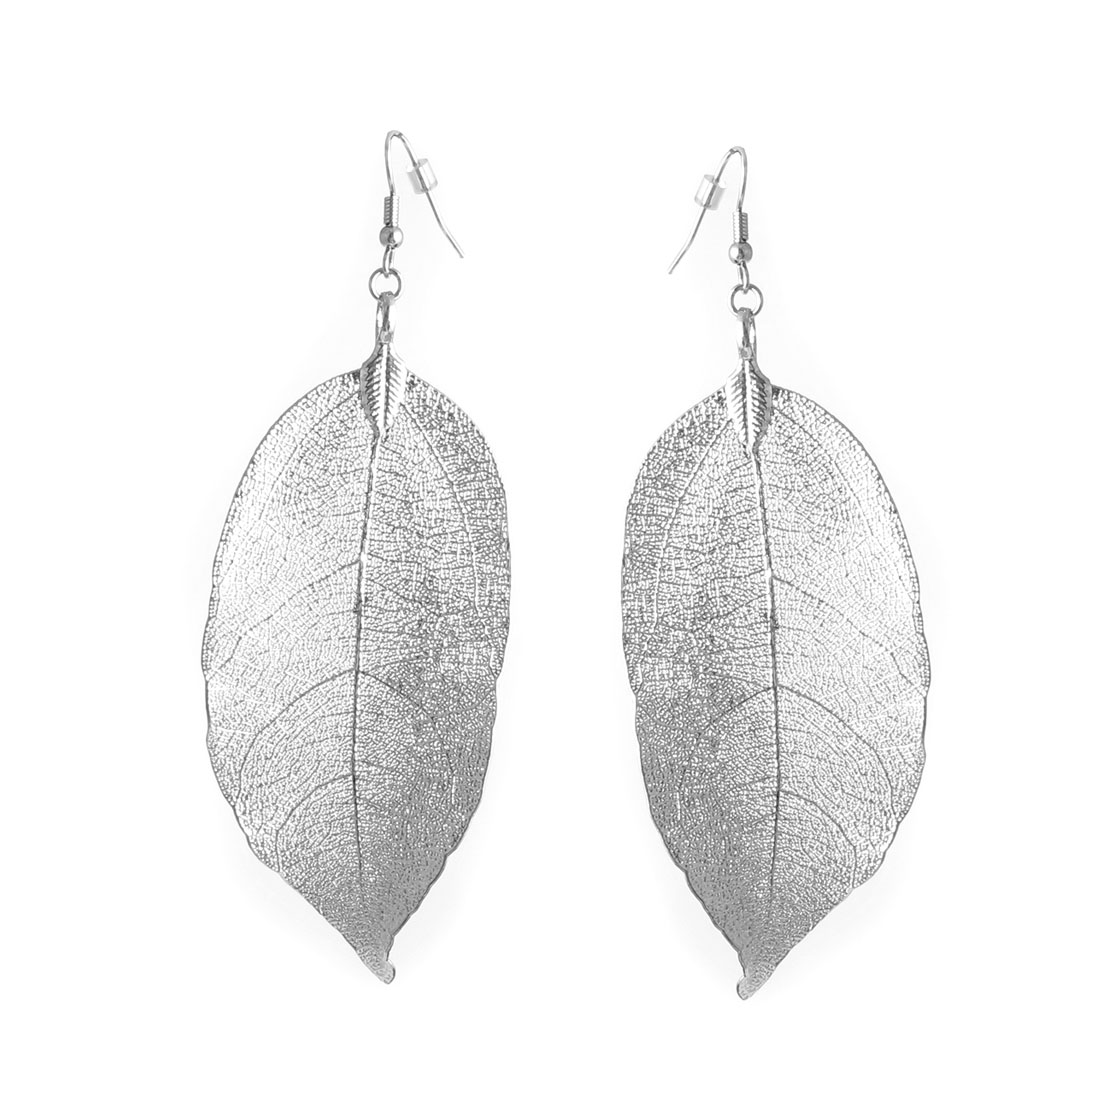 "Lady Women Metal Leaf Shape Dangling Pendant Hook Earrings Earbobs Silver Tone 4.1"" Length Pair"